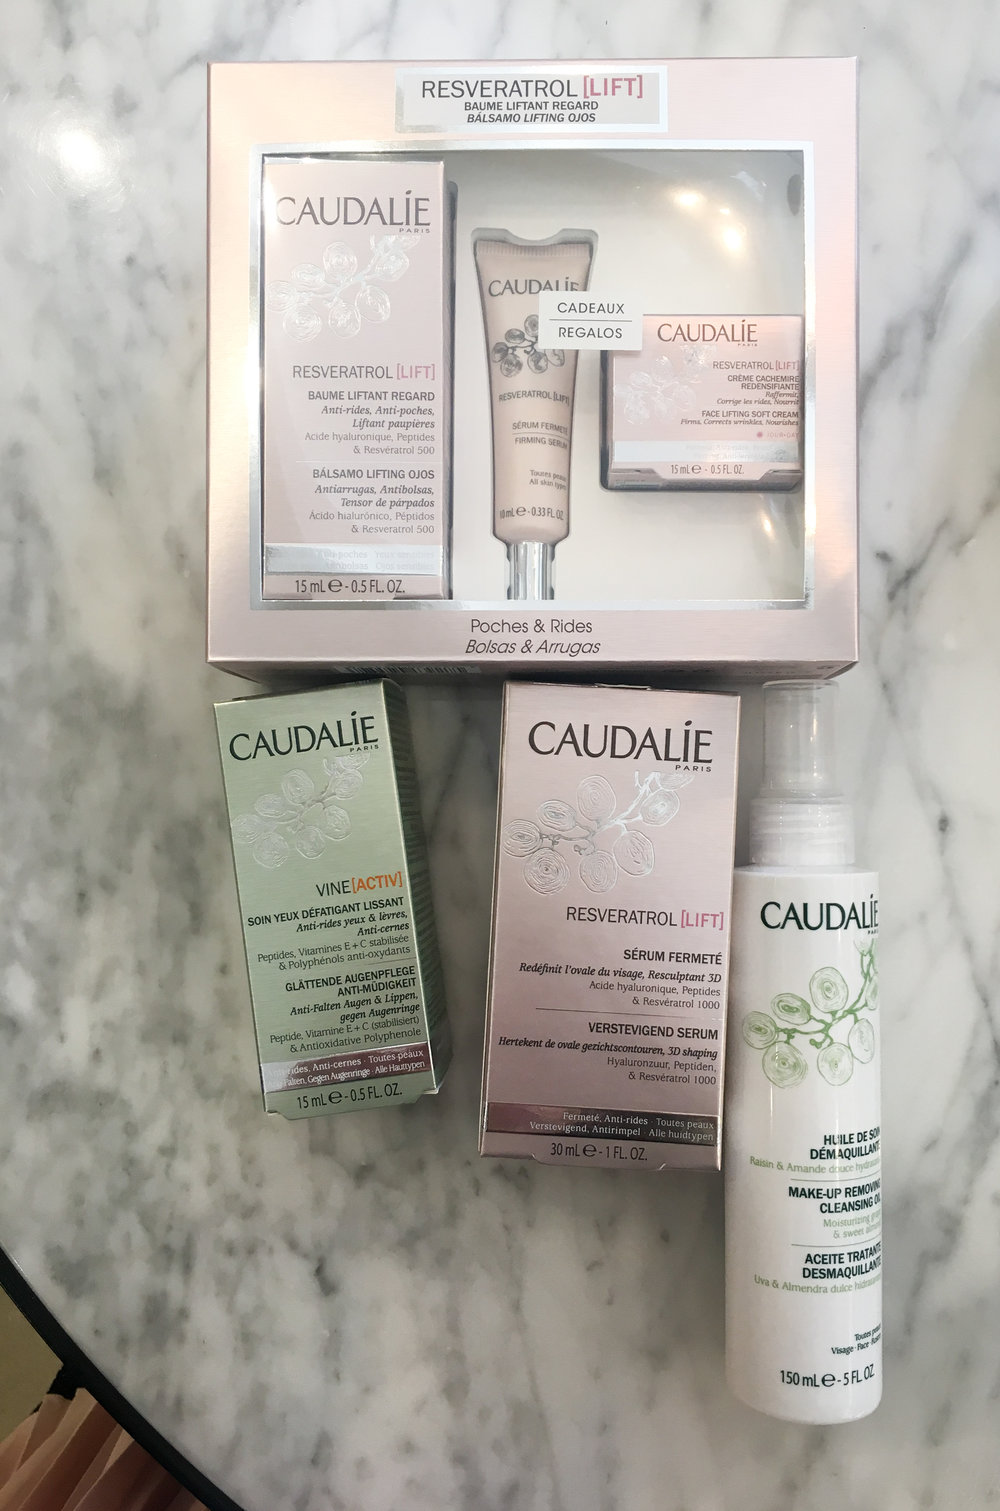 caudalie paris france